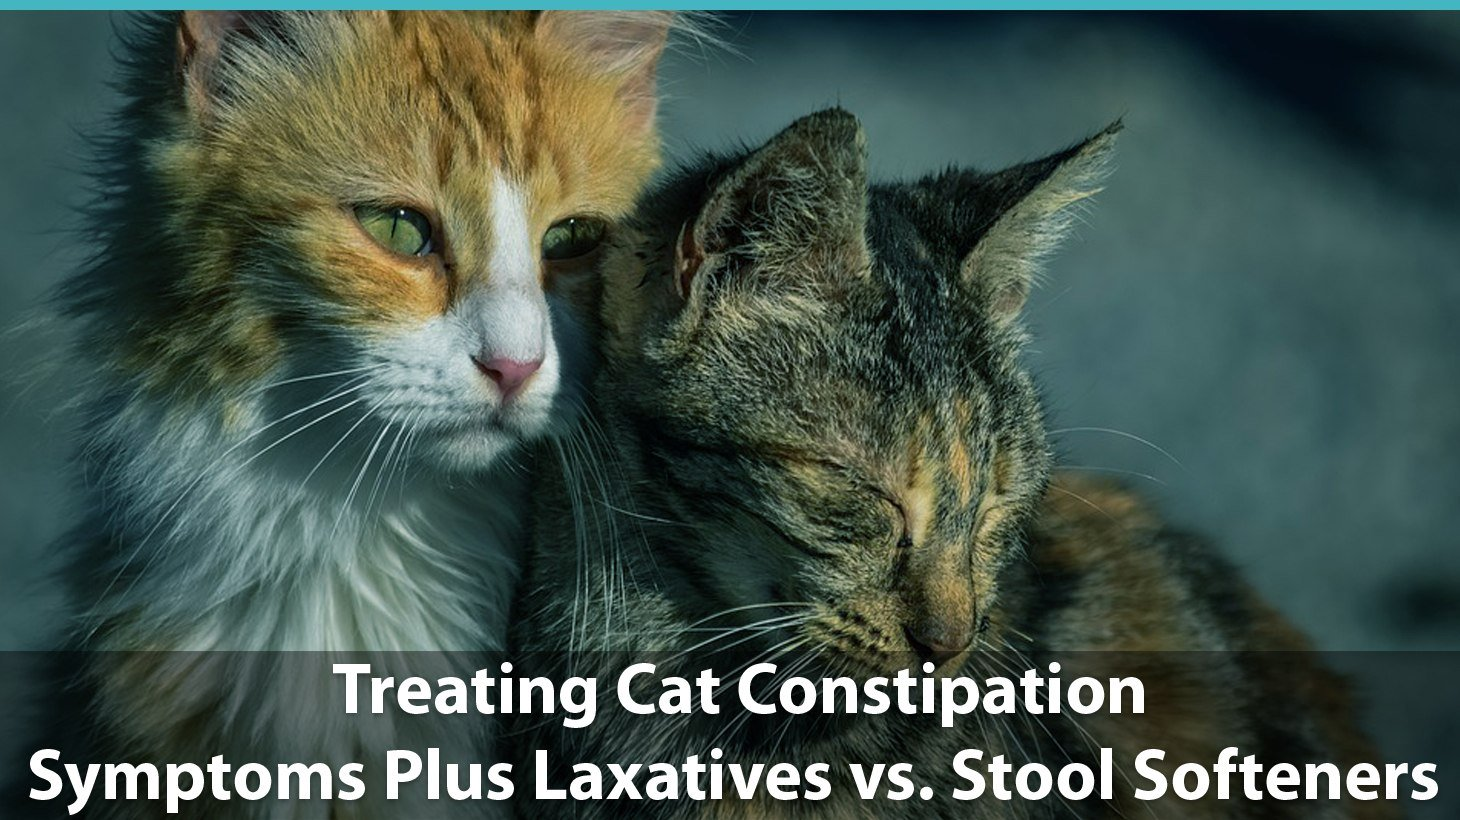 Treating Cat Constipation | Symptoms and Laxatives vs  Stool